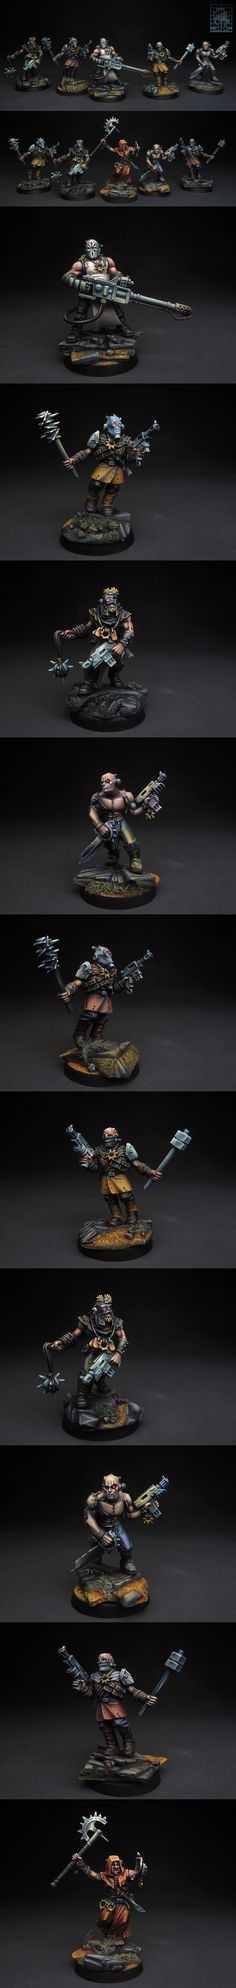 CoolMiniOrNot - Chaos Cultists of Sect Anarkus Warhammer 40k Art, Warhammer Models, Warhammer 40k Miniatures, Warhammer Fantasy, Dark Vengeance, Chaos 40k, 40k Armies, Minis, Sci Fi Miniatures